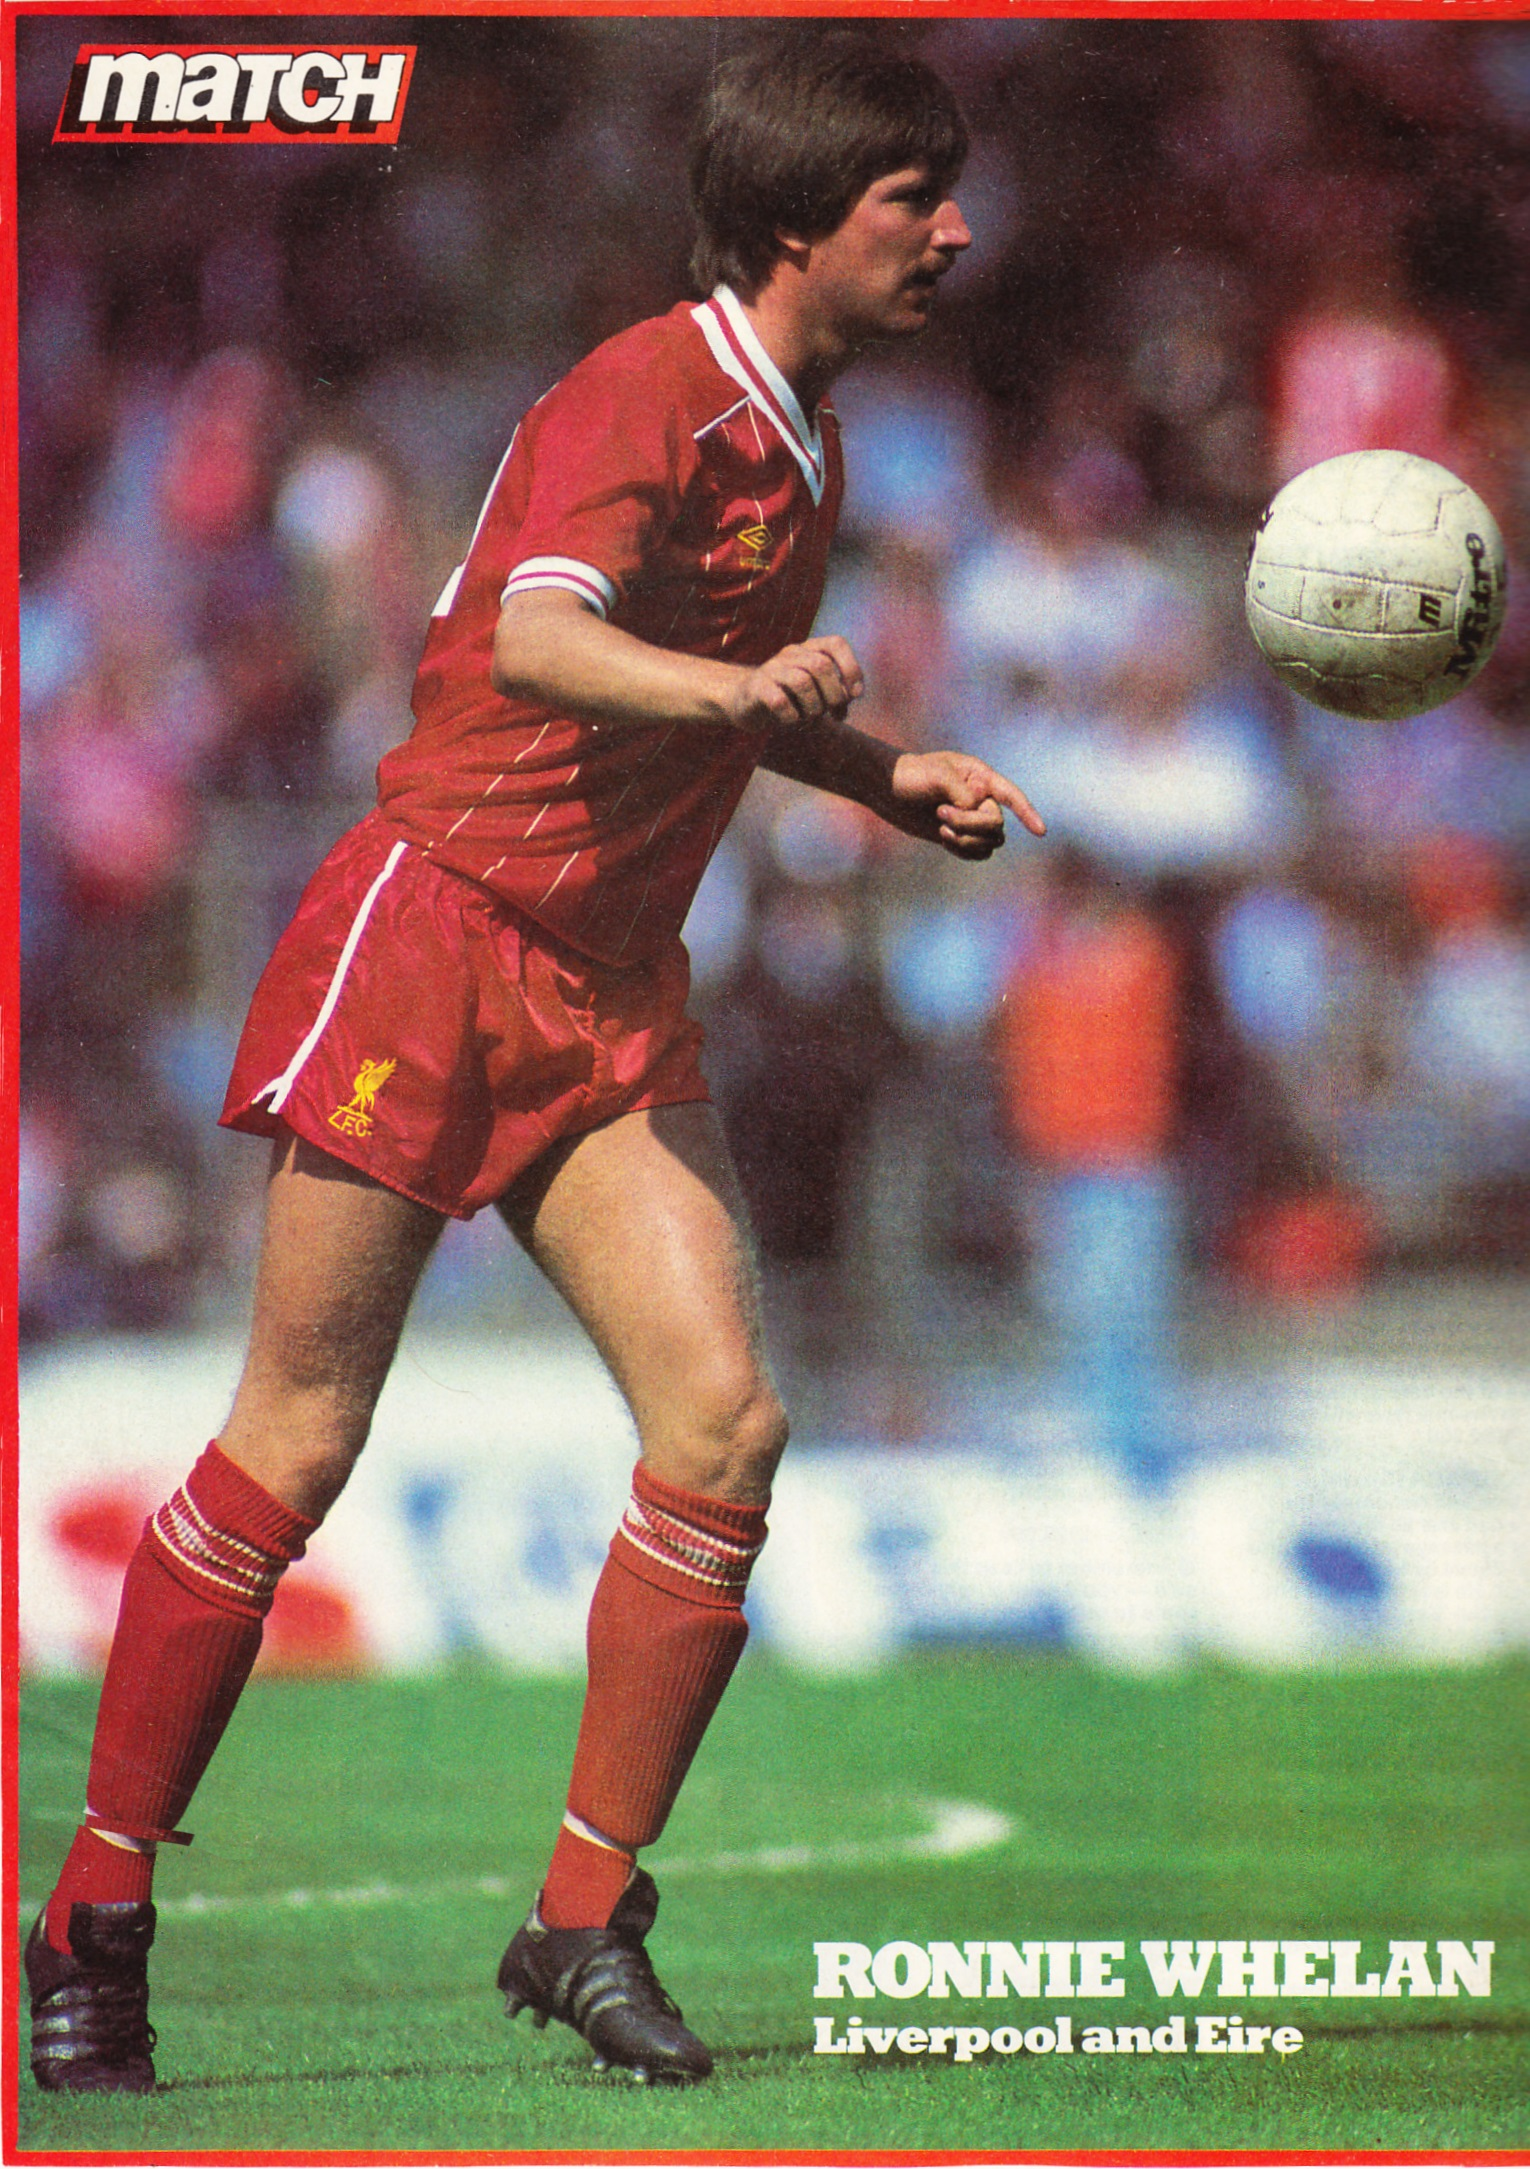 Match poster of Ronnie Whelan from early 80s